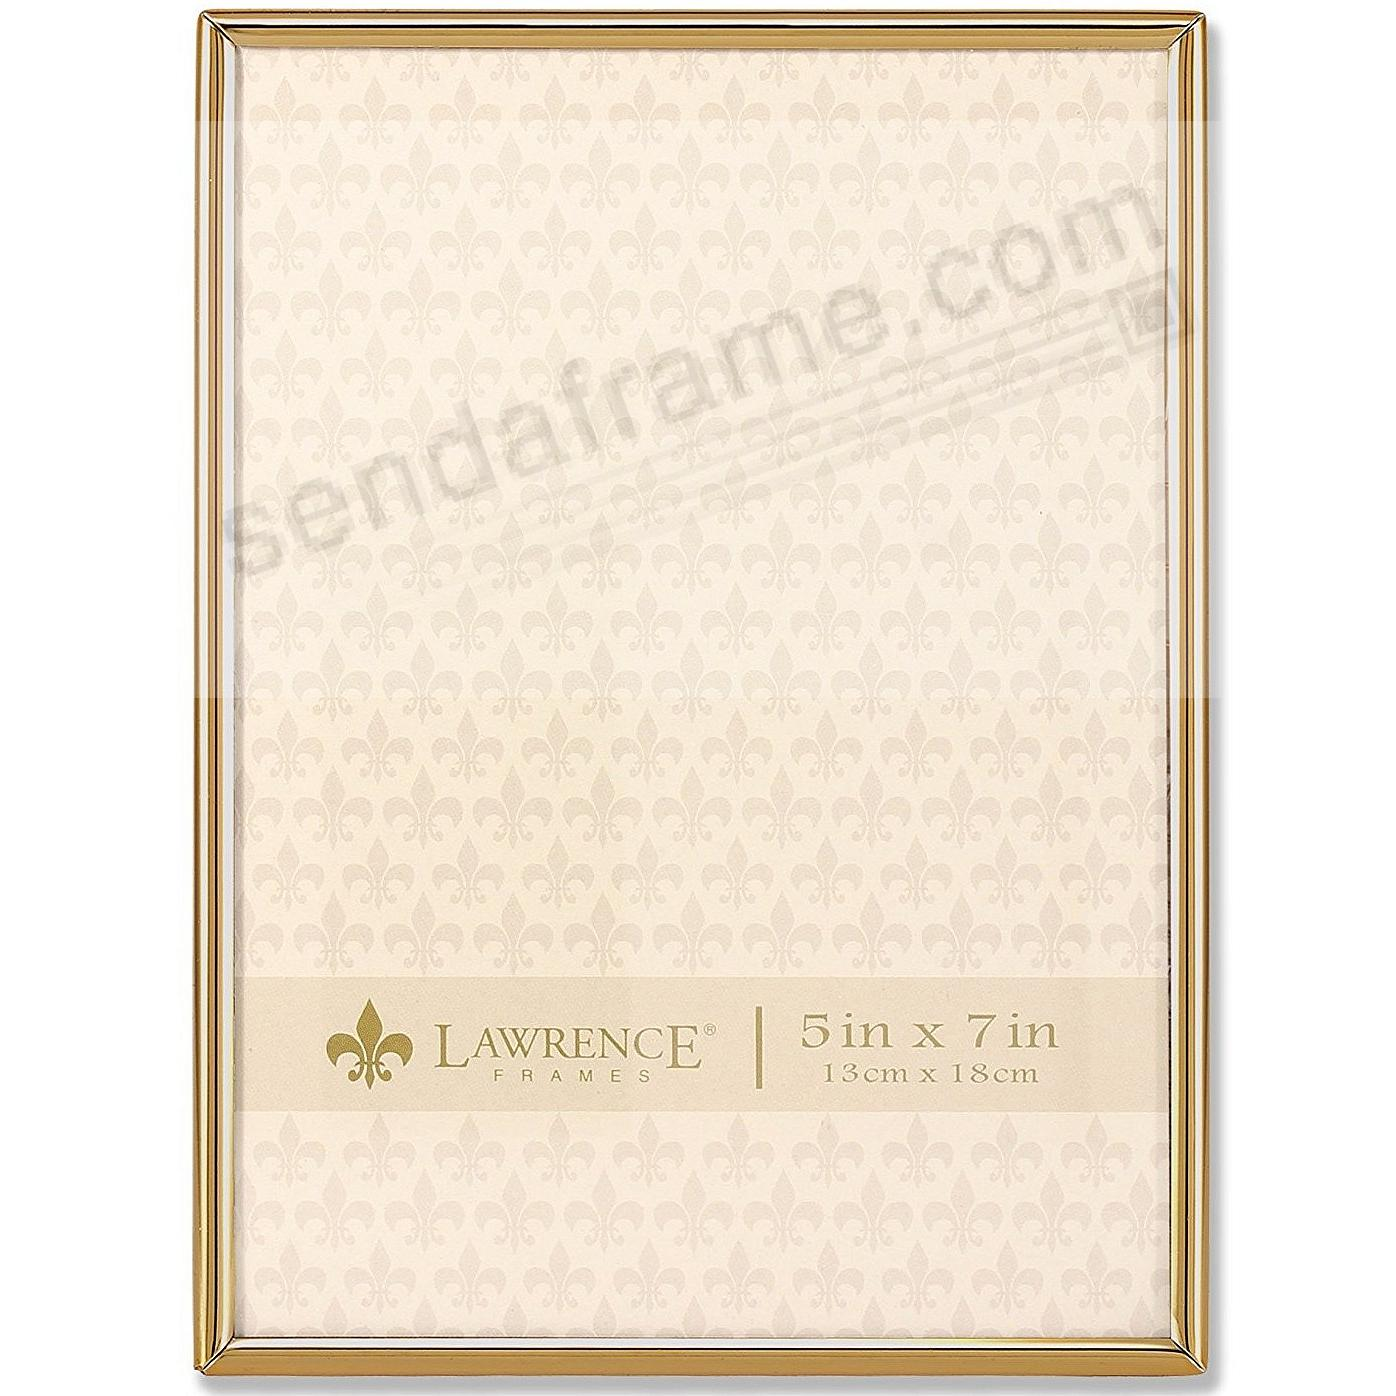 Polished SIMPLY GOLD 5x7 frame by Lawrence® - Picture Frames, Photo ...